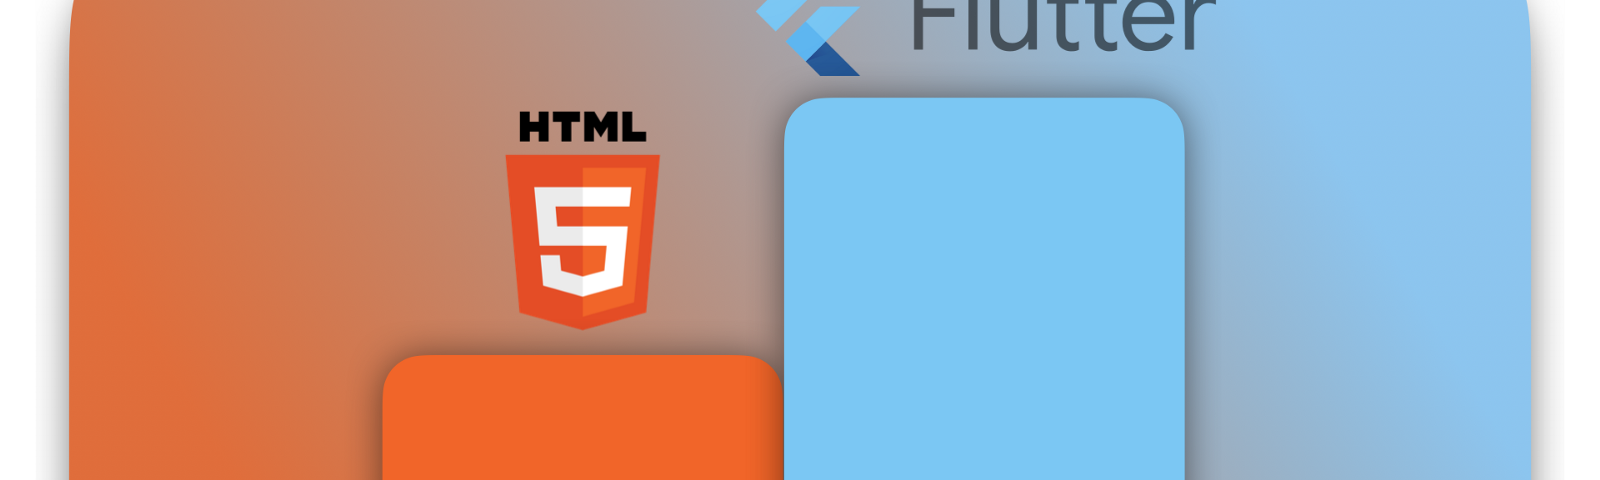 wordmarks and logos for HTML 5 and Flutter